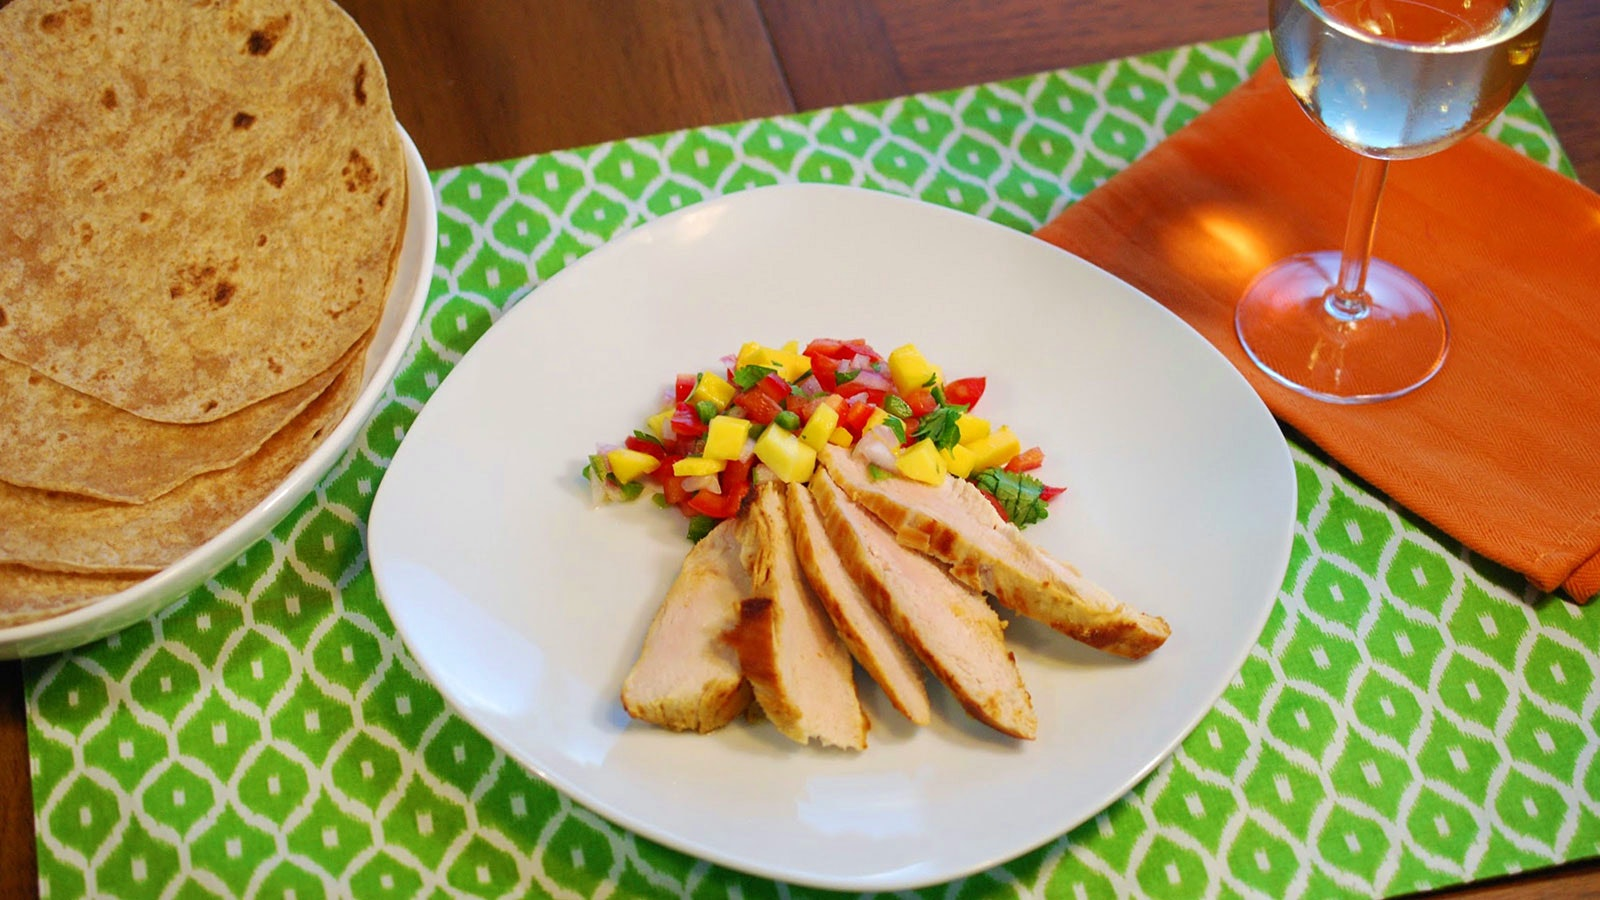 A white plate with sliced chicken breast and mango salsa, a plate with tortillas and a glass of white wine